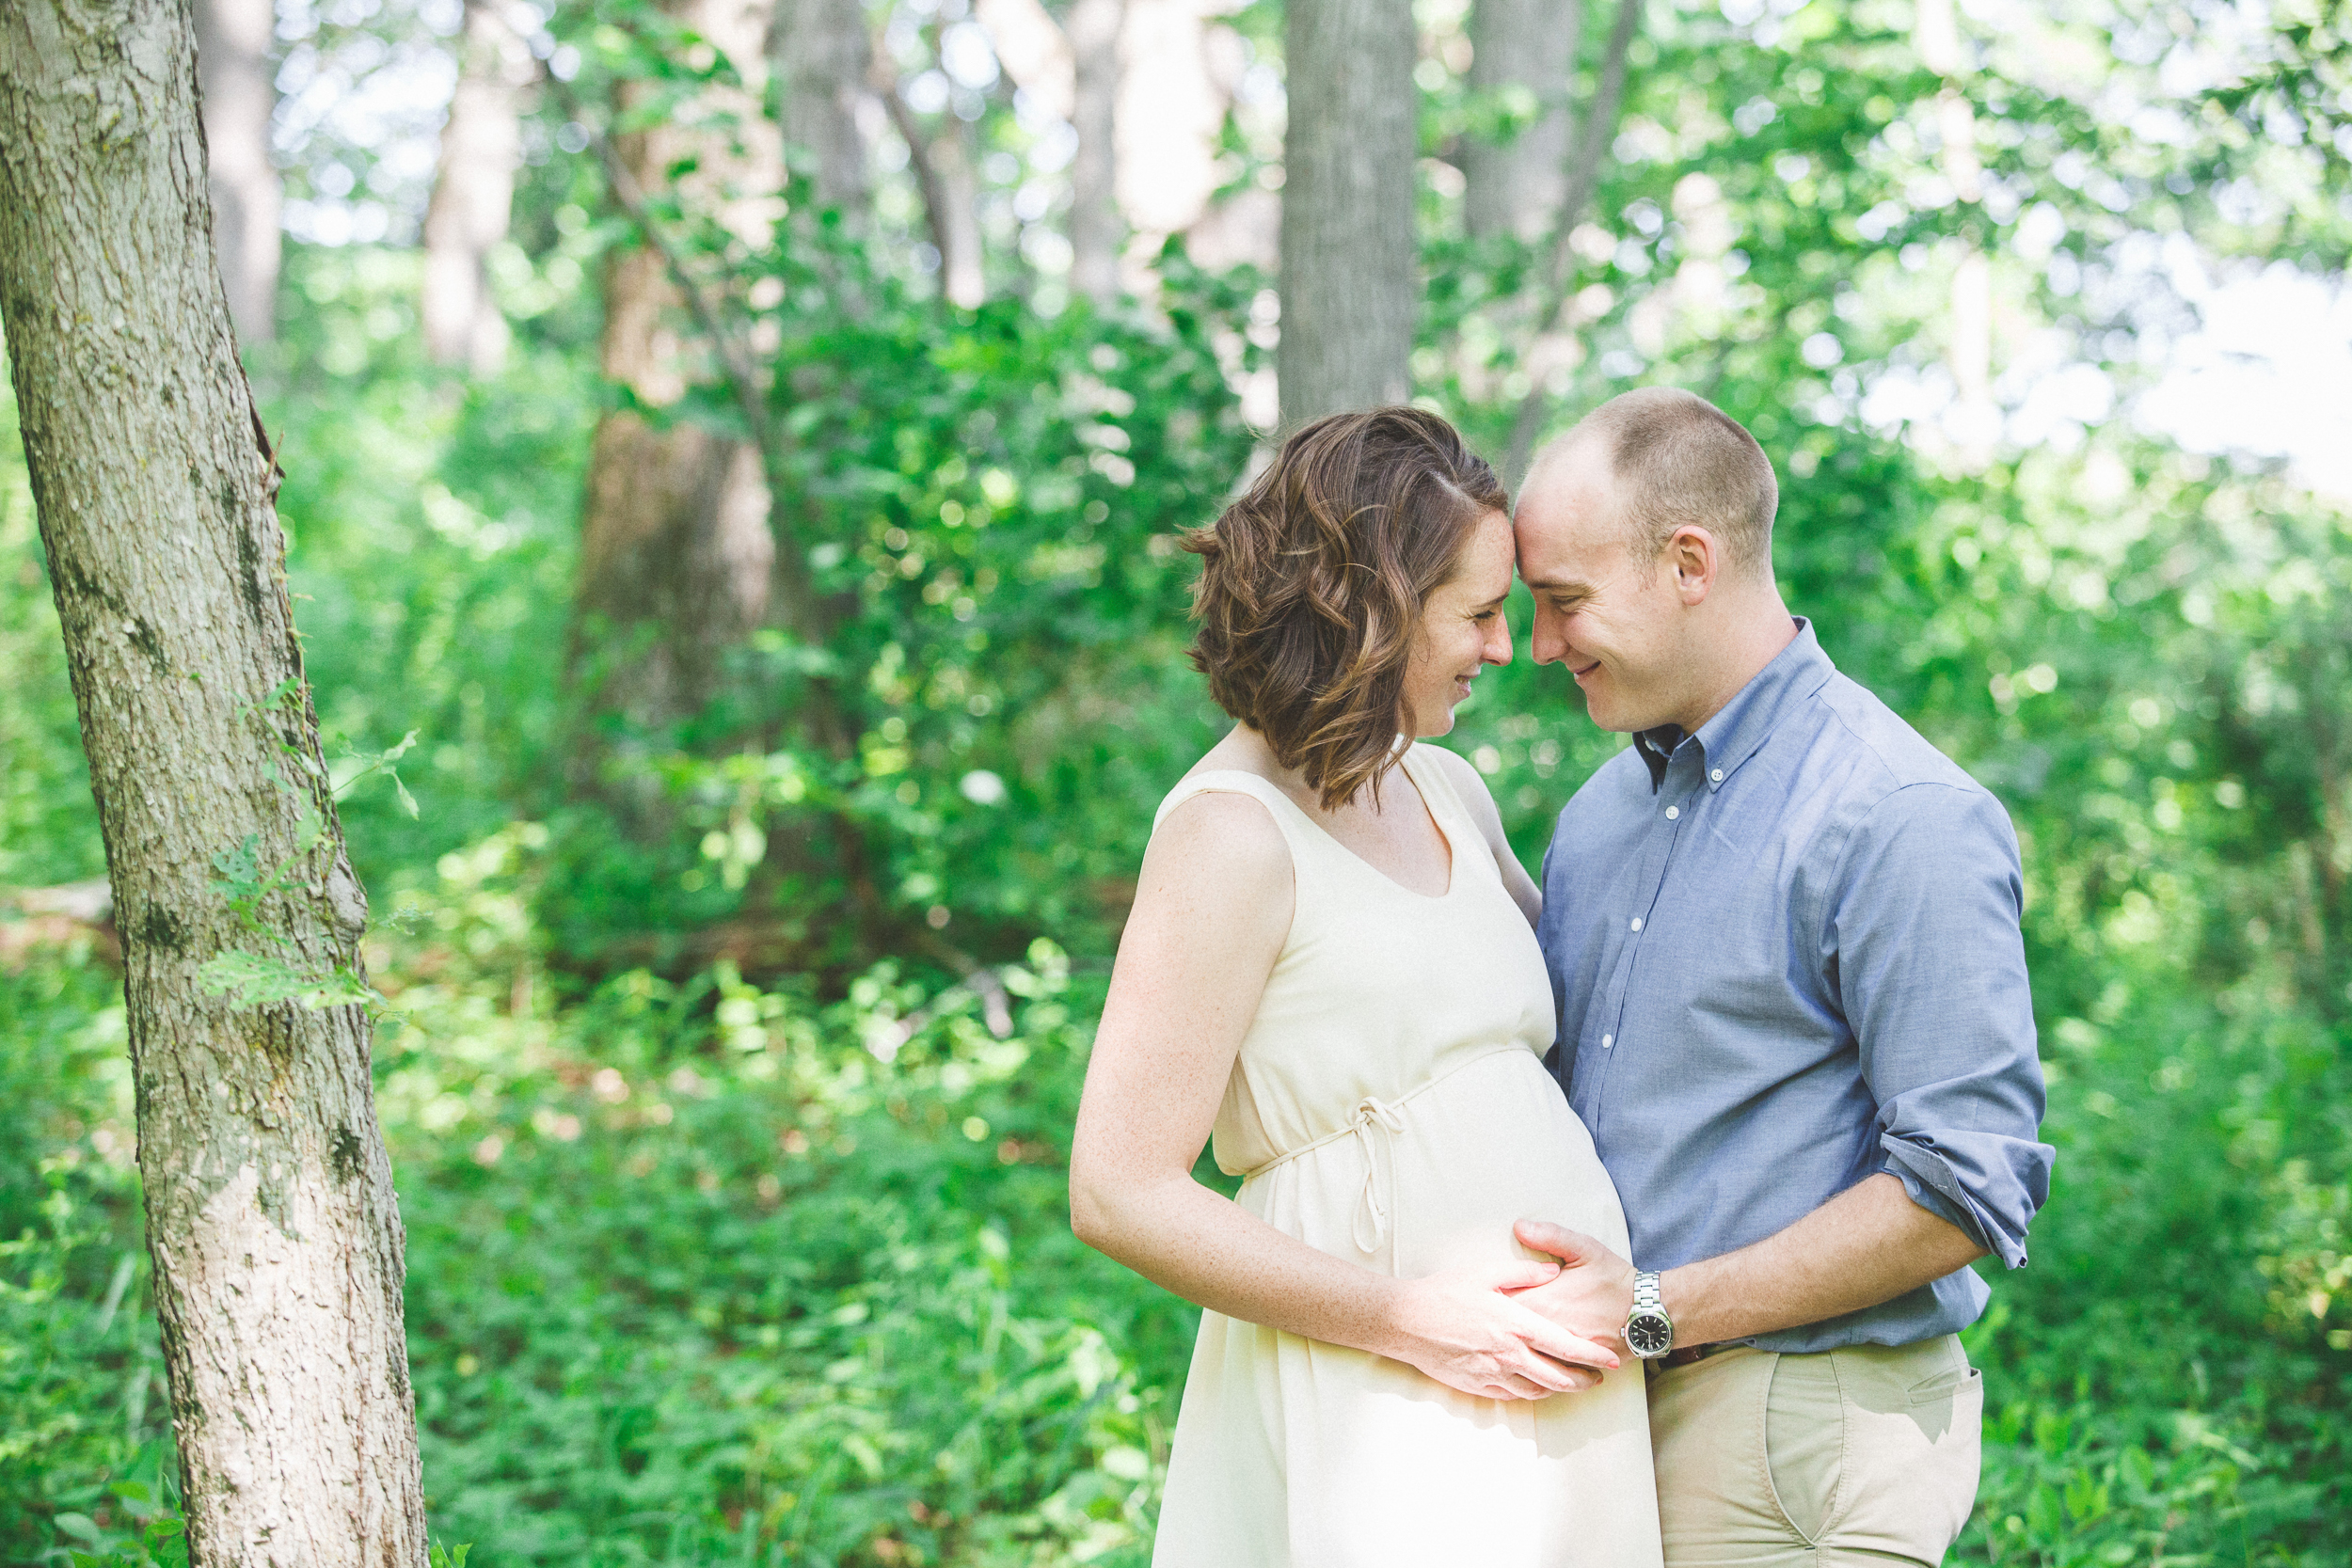 Rochester_NY_Maternity_Portrait_Photographer-10.jpg